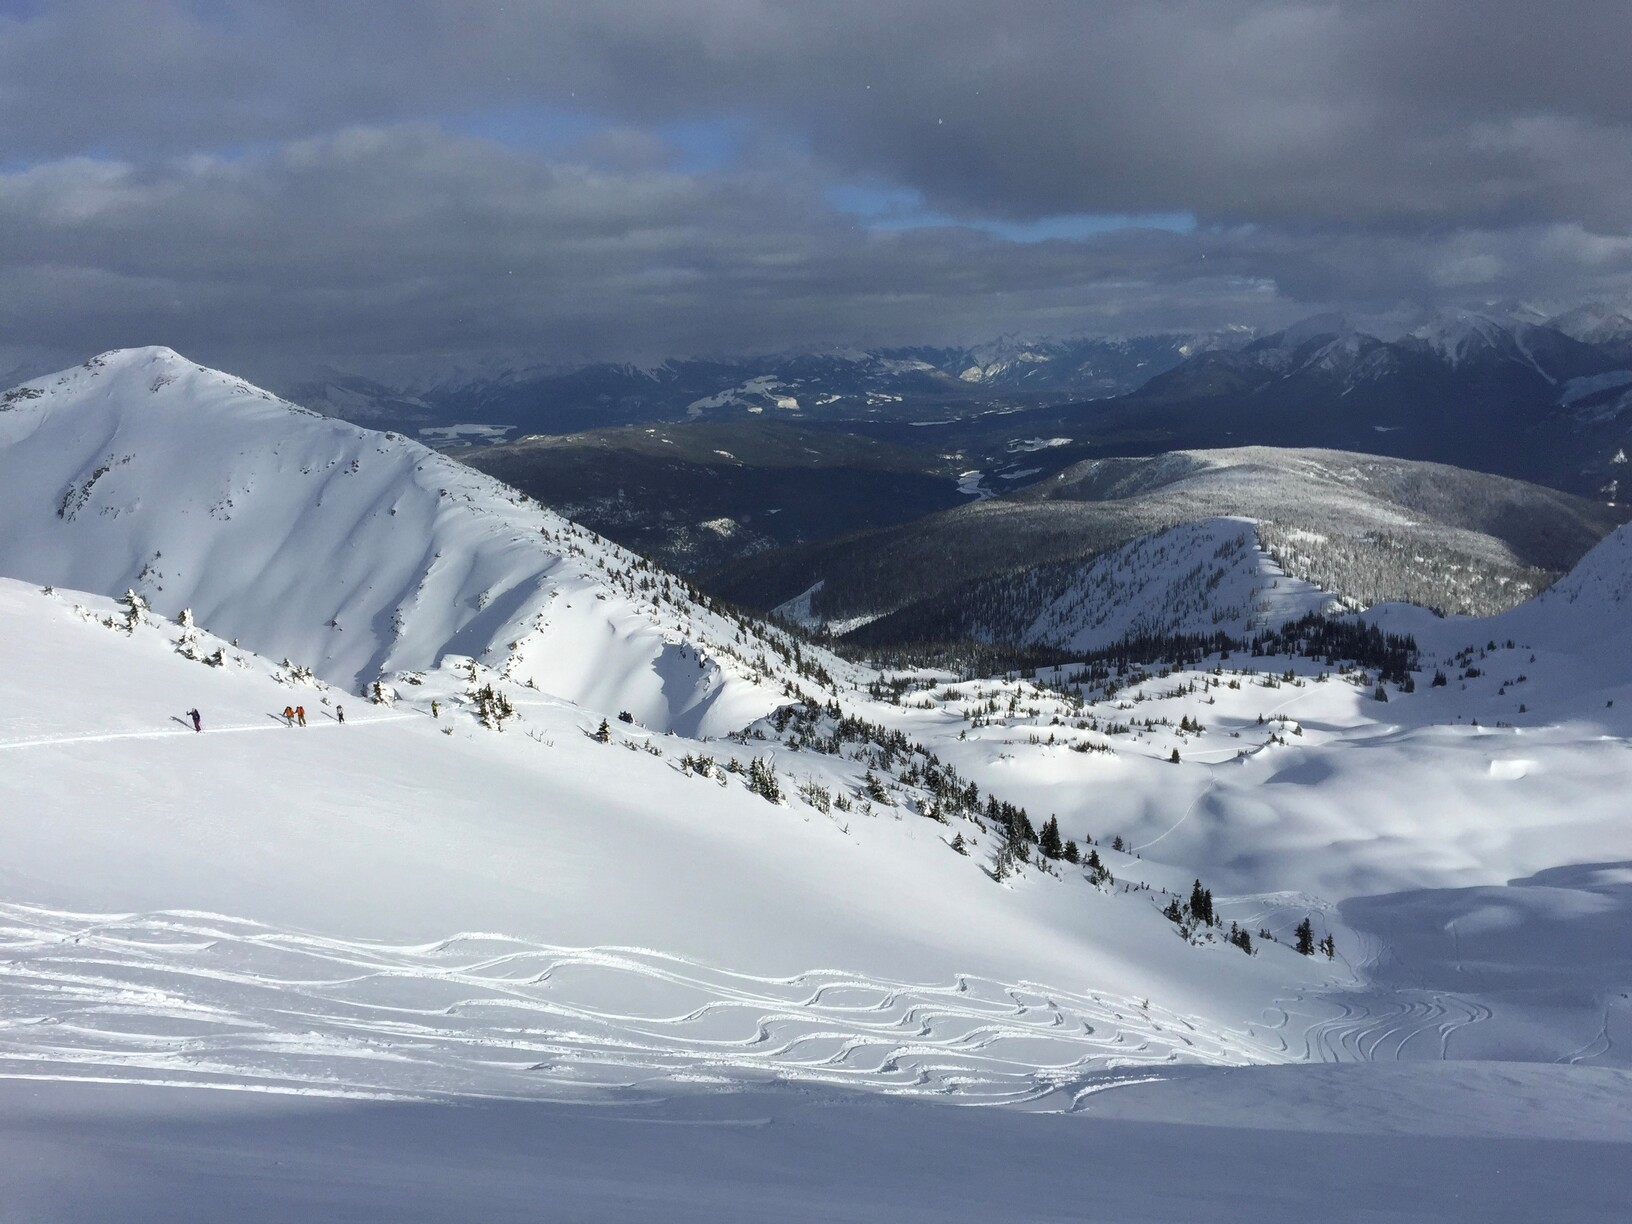 Backcountry Safe: Lessons Learned So That Every Journey Ends With A Safe Return